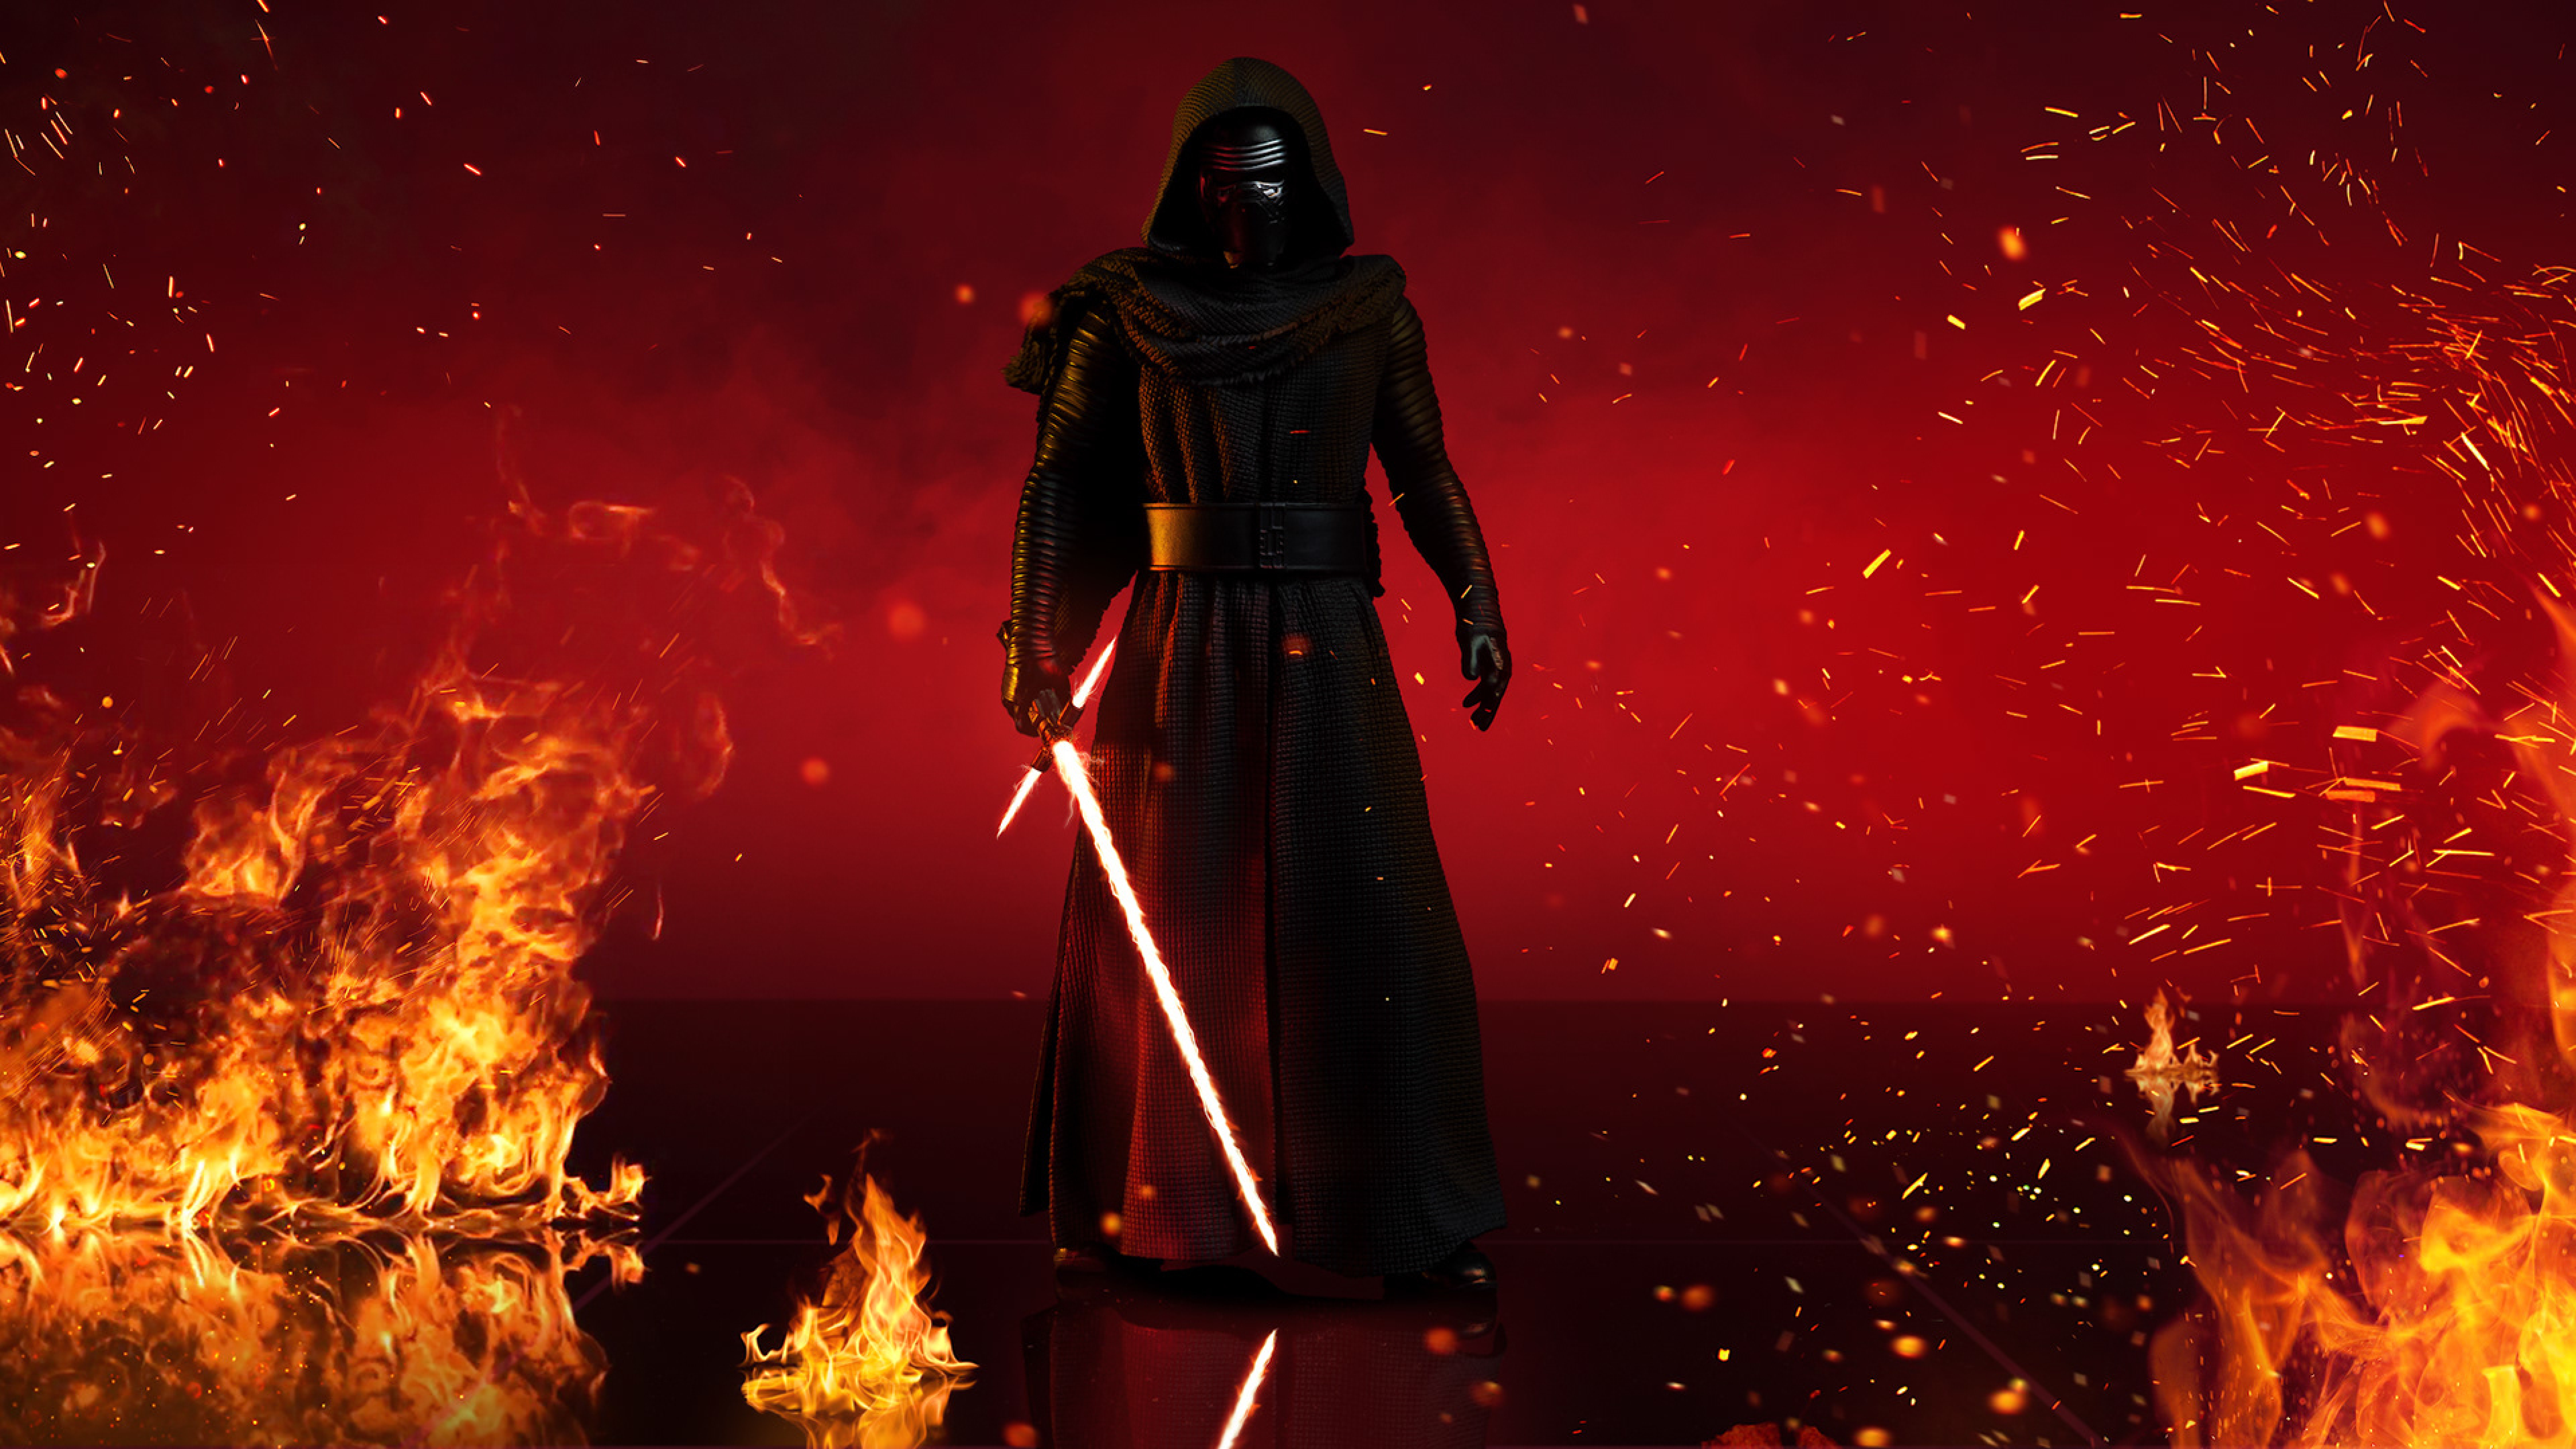 7680x4320 Kylo Ren With Lightsaber In Star Wars 8k Wallpaper Hd Movies 4k Wallpapers Images Photos And Background